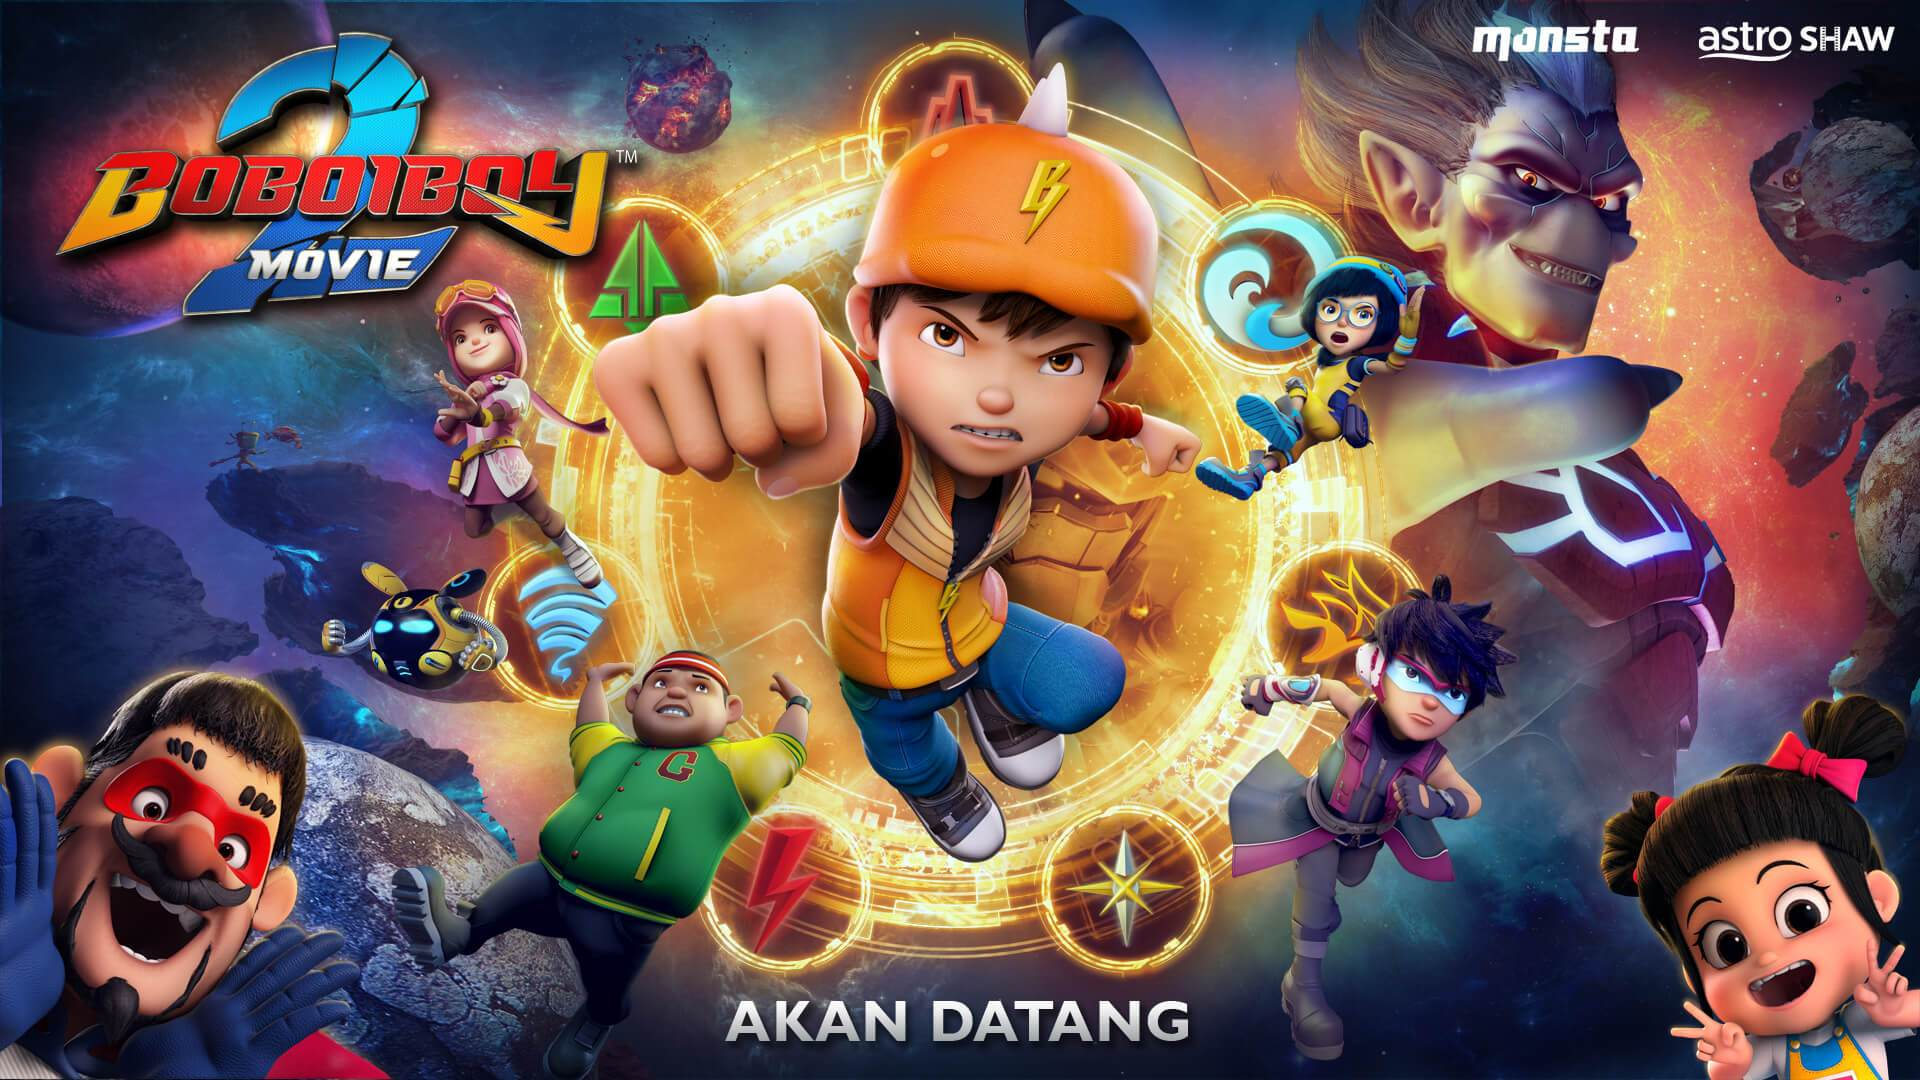 Boboiboy Movie 2 Wallpapers Wallpaper Cave